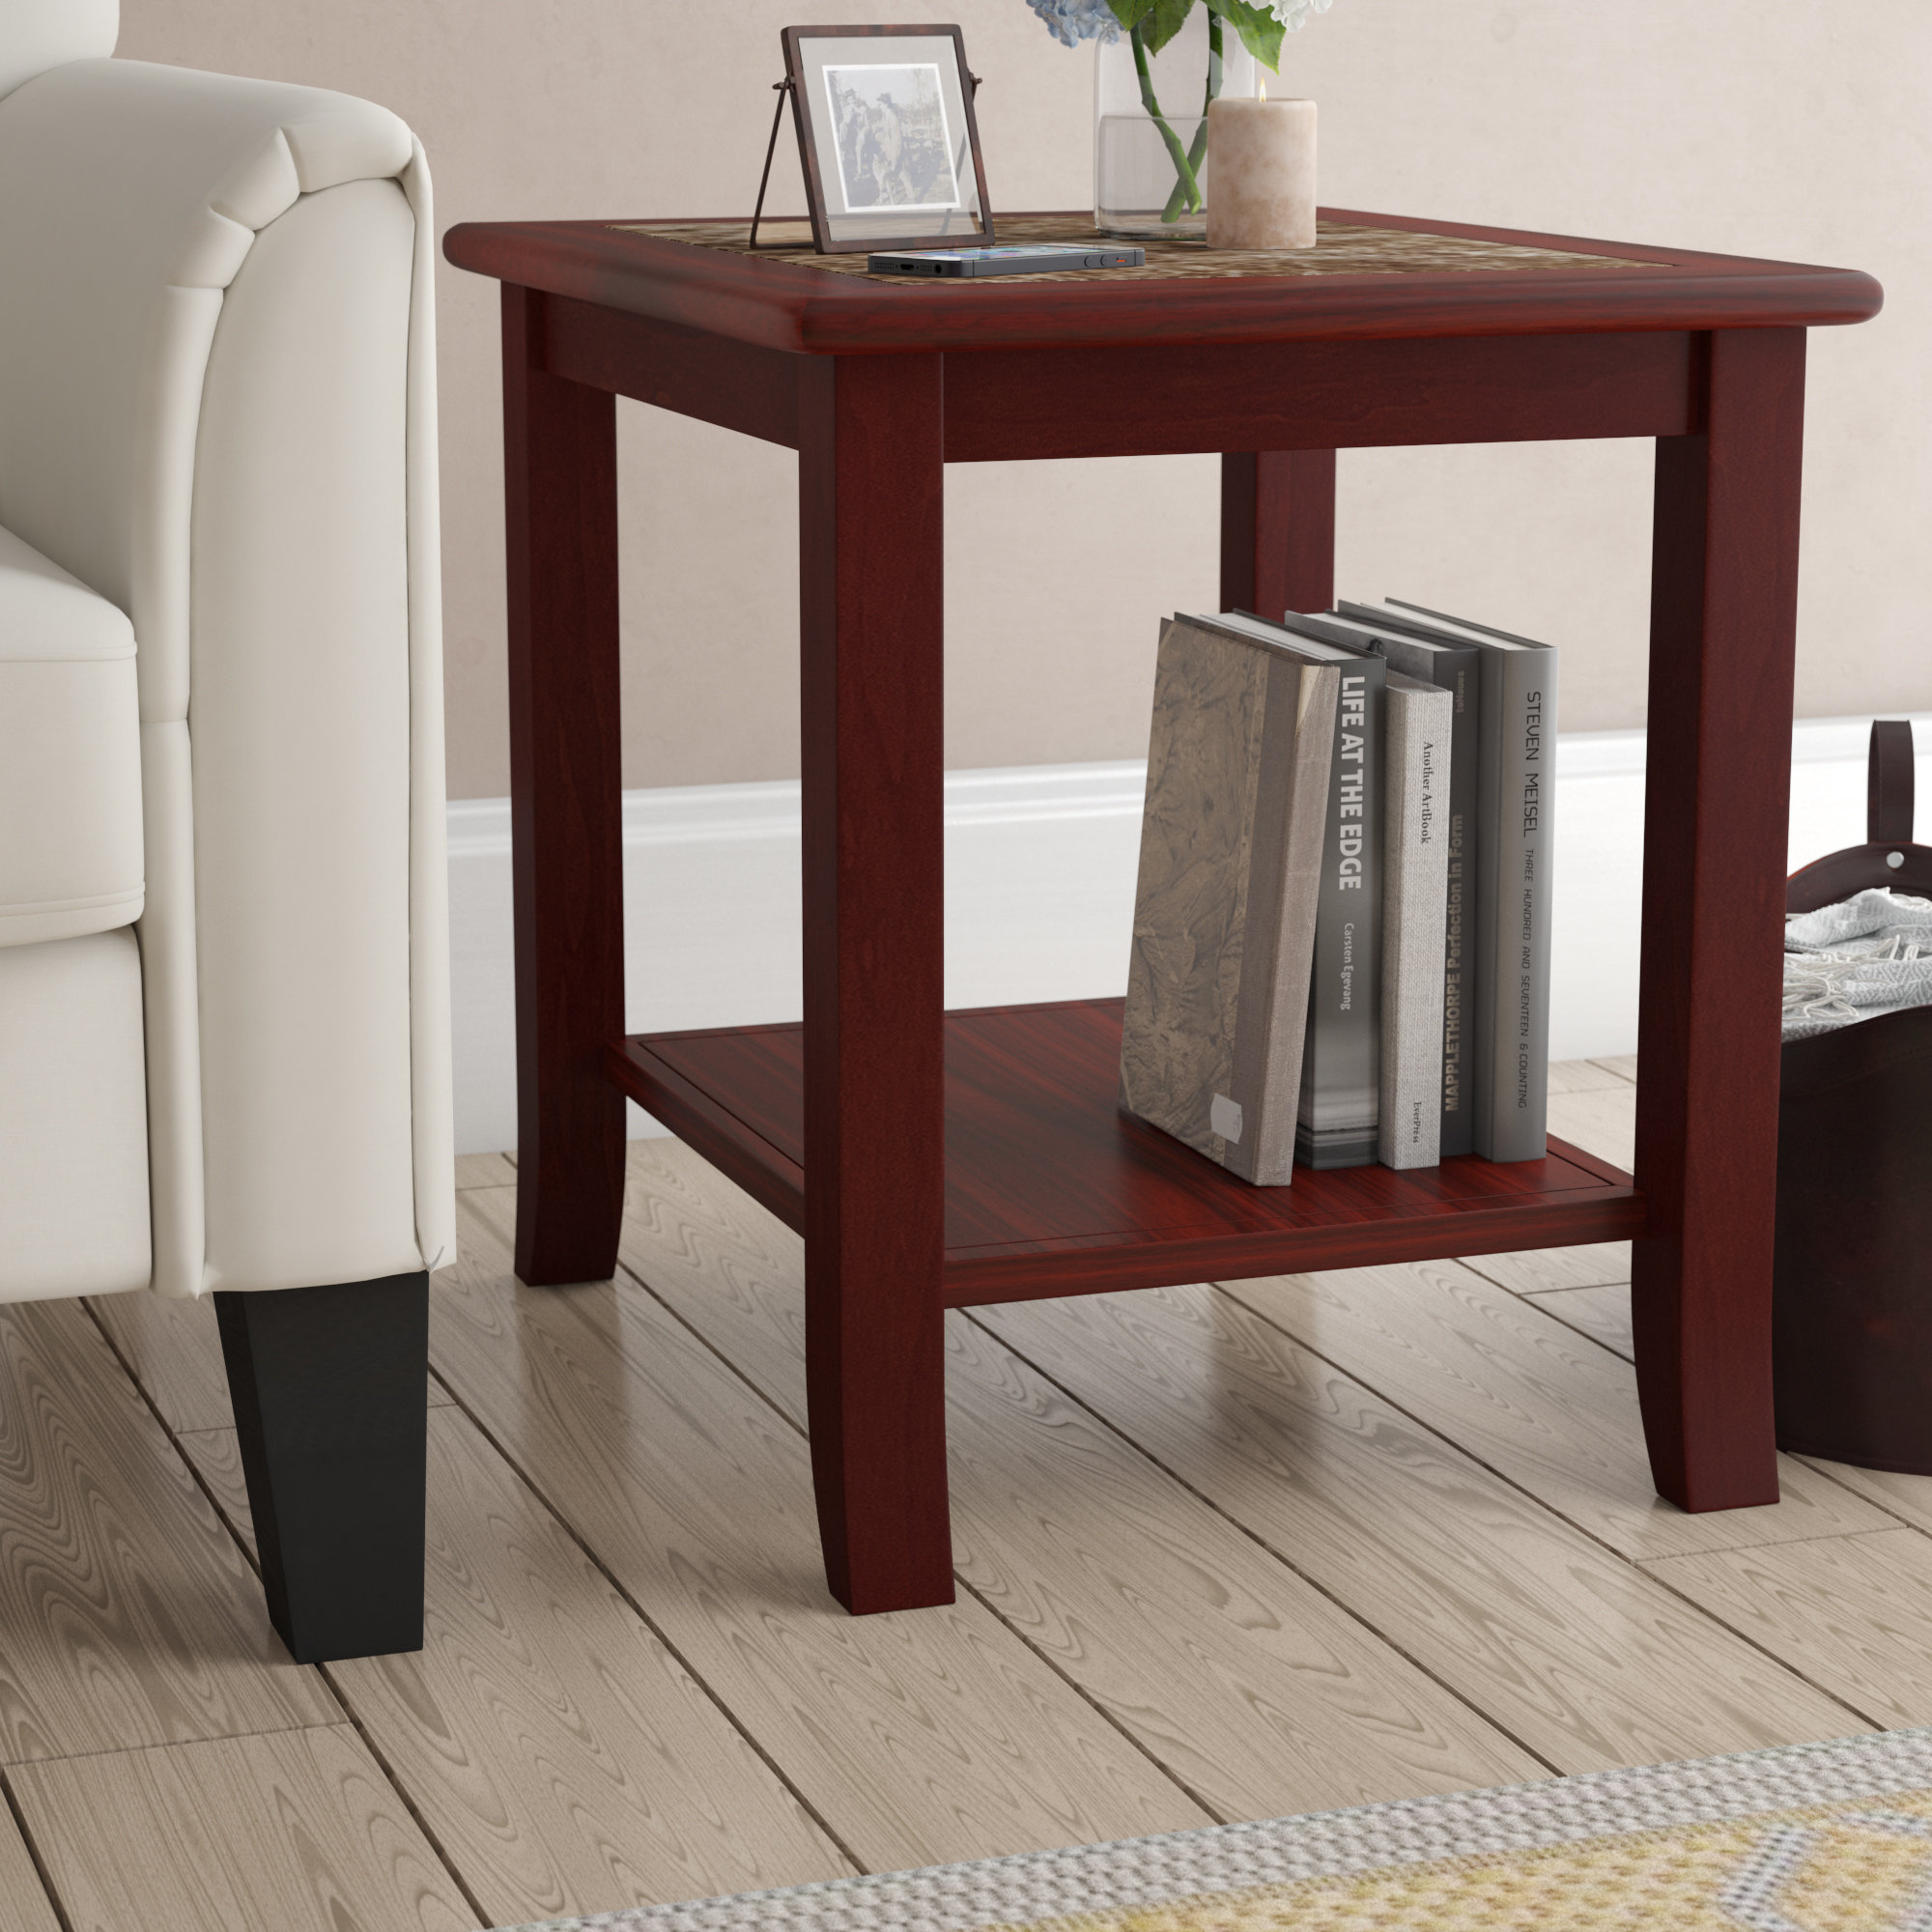 round marble top end table sturgill aluminum accent quickview extra wide console glass and steel side bedroom trunk modern area rugs rough wood coffee grill utensils desk chairs